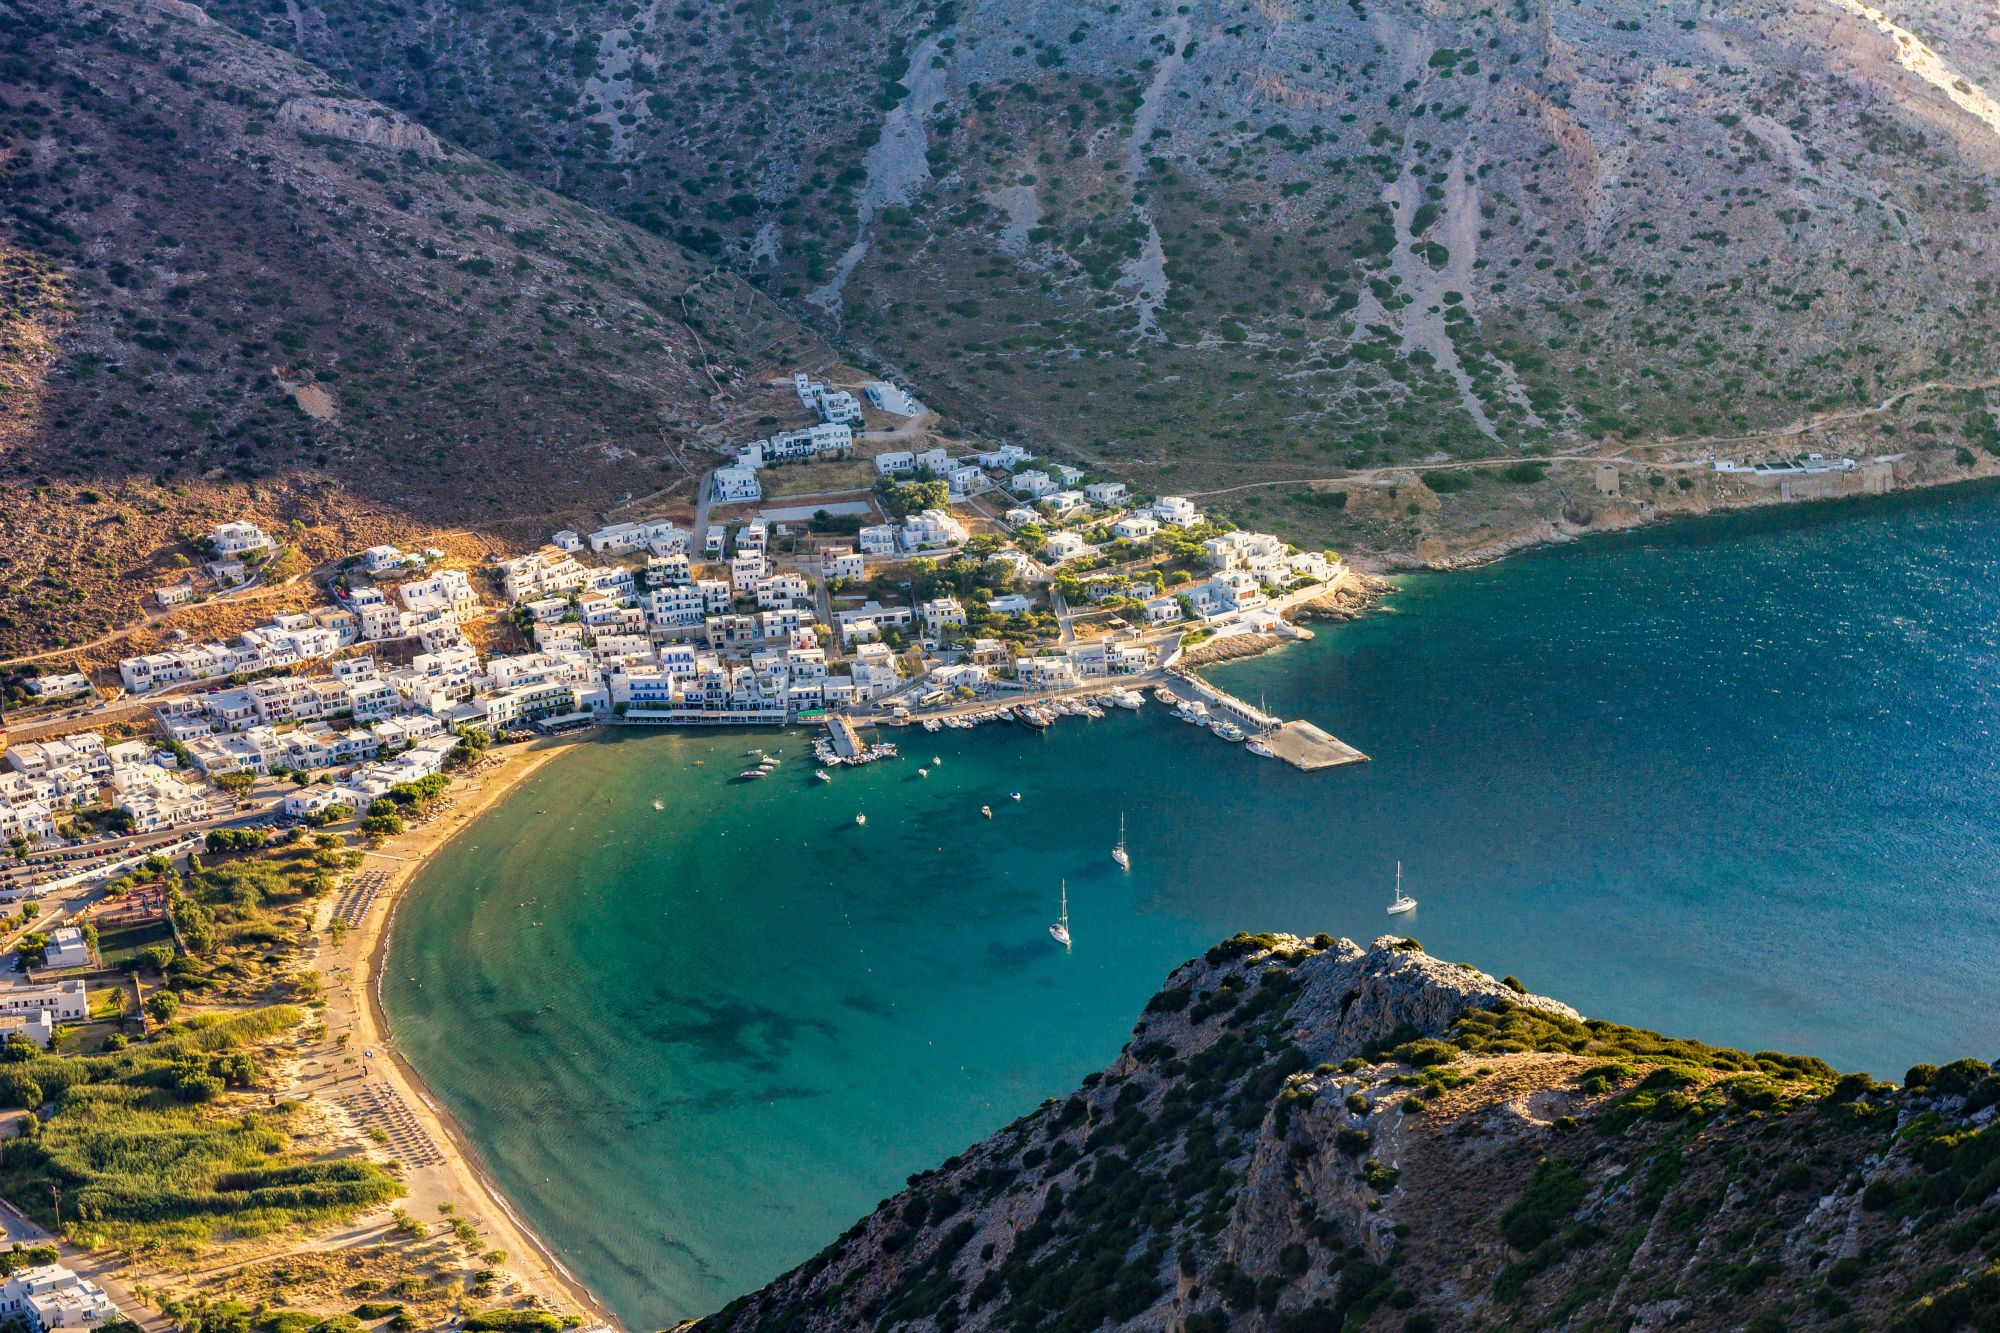 Greece Island Hopping Signature  Tours 2019 - 2020 -  Coastal Town View From Cliff